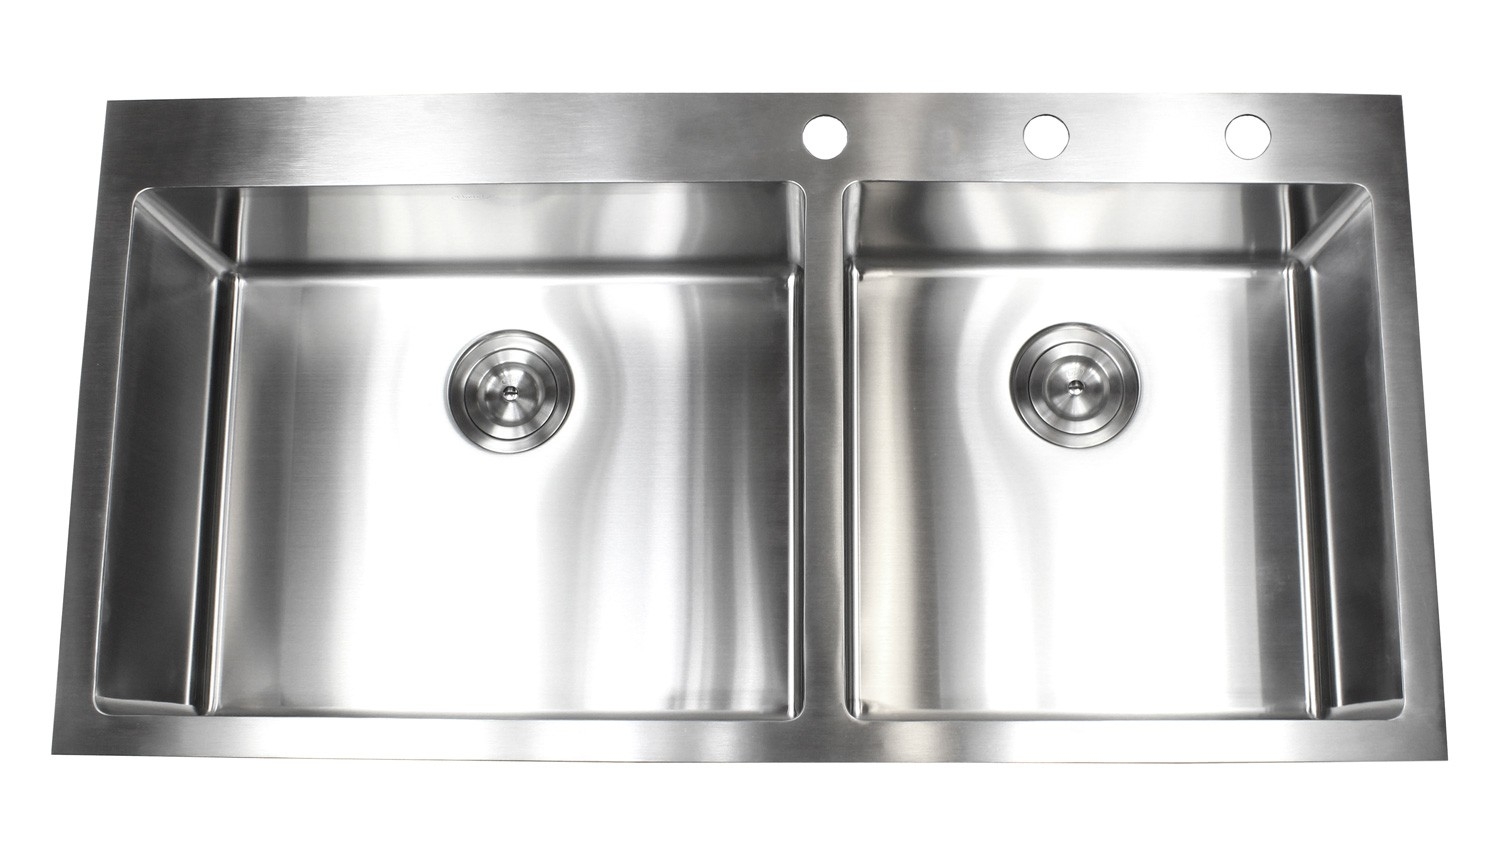 43 inch top mount drop in stainless steel double bowl kitchen sink 43 inch drop in stainless steel double bowl kitchen sink 15mm radius design workwithnaturefo